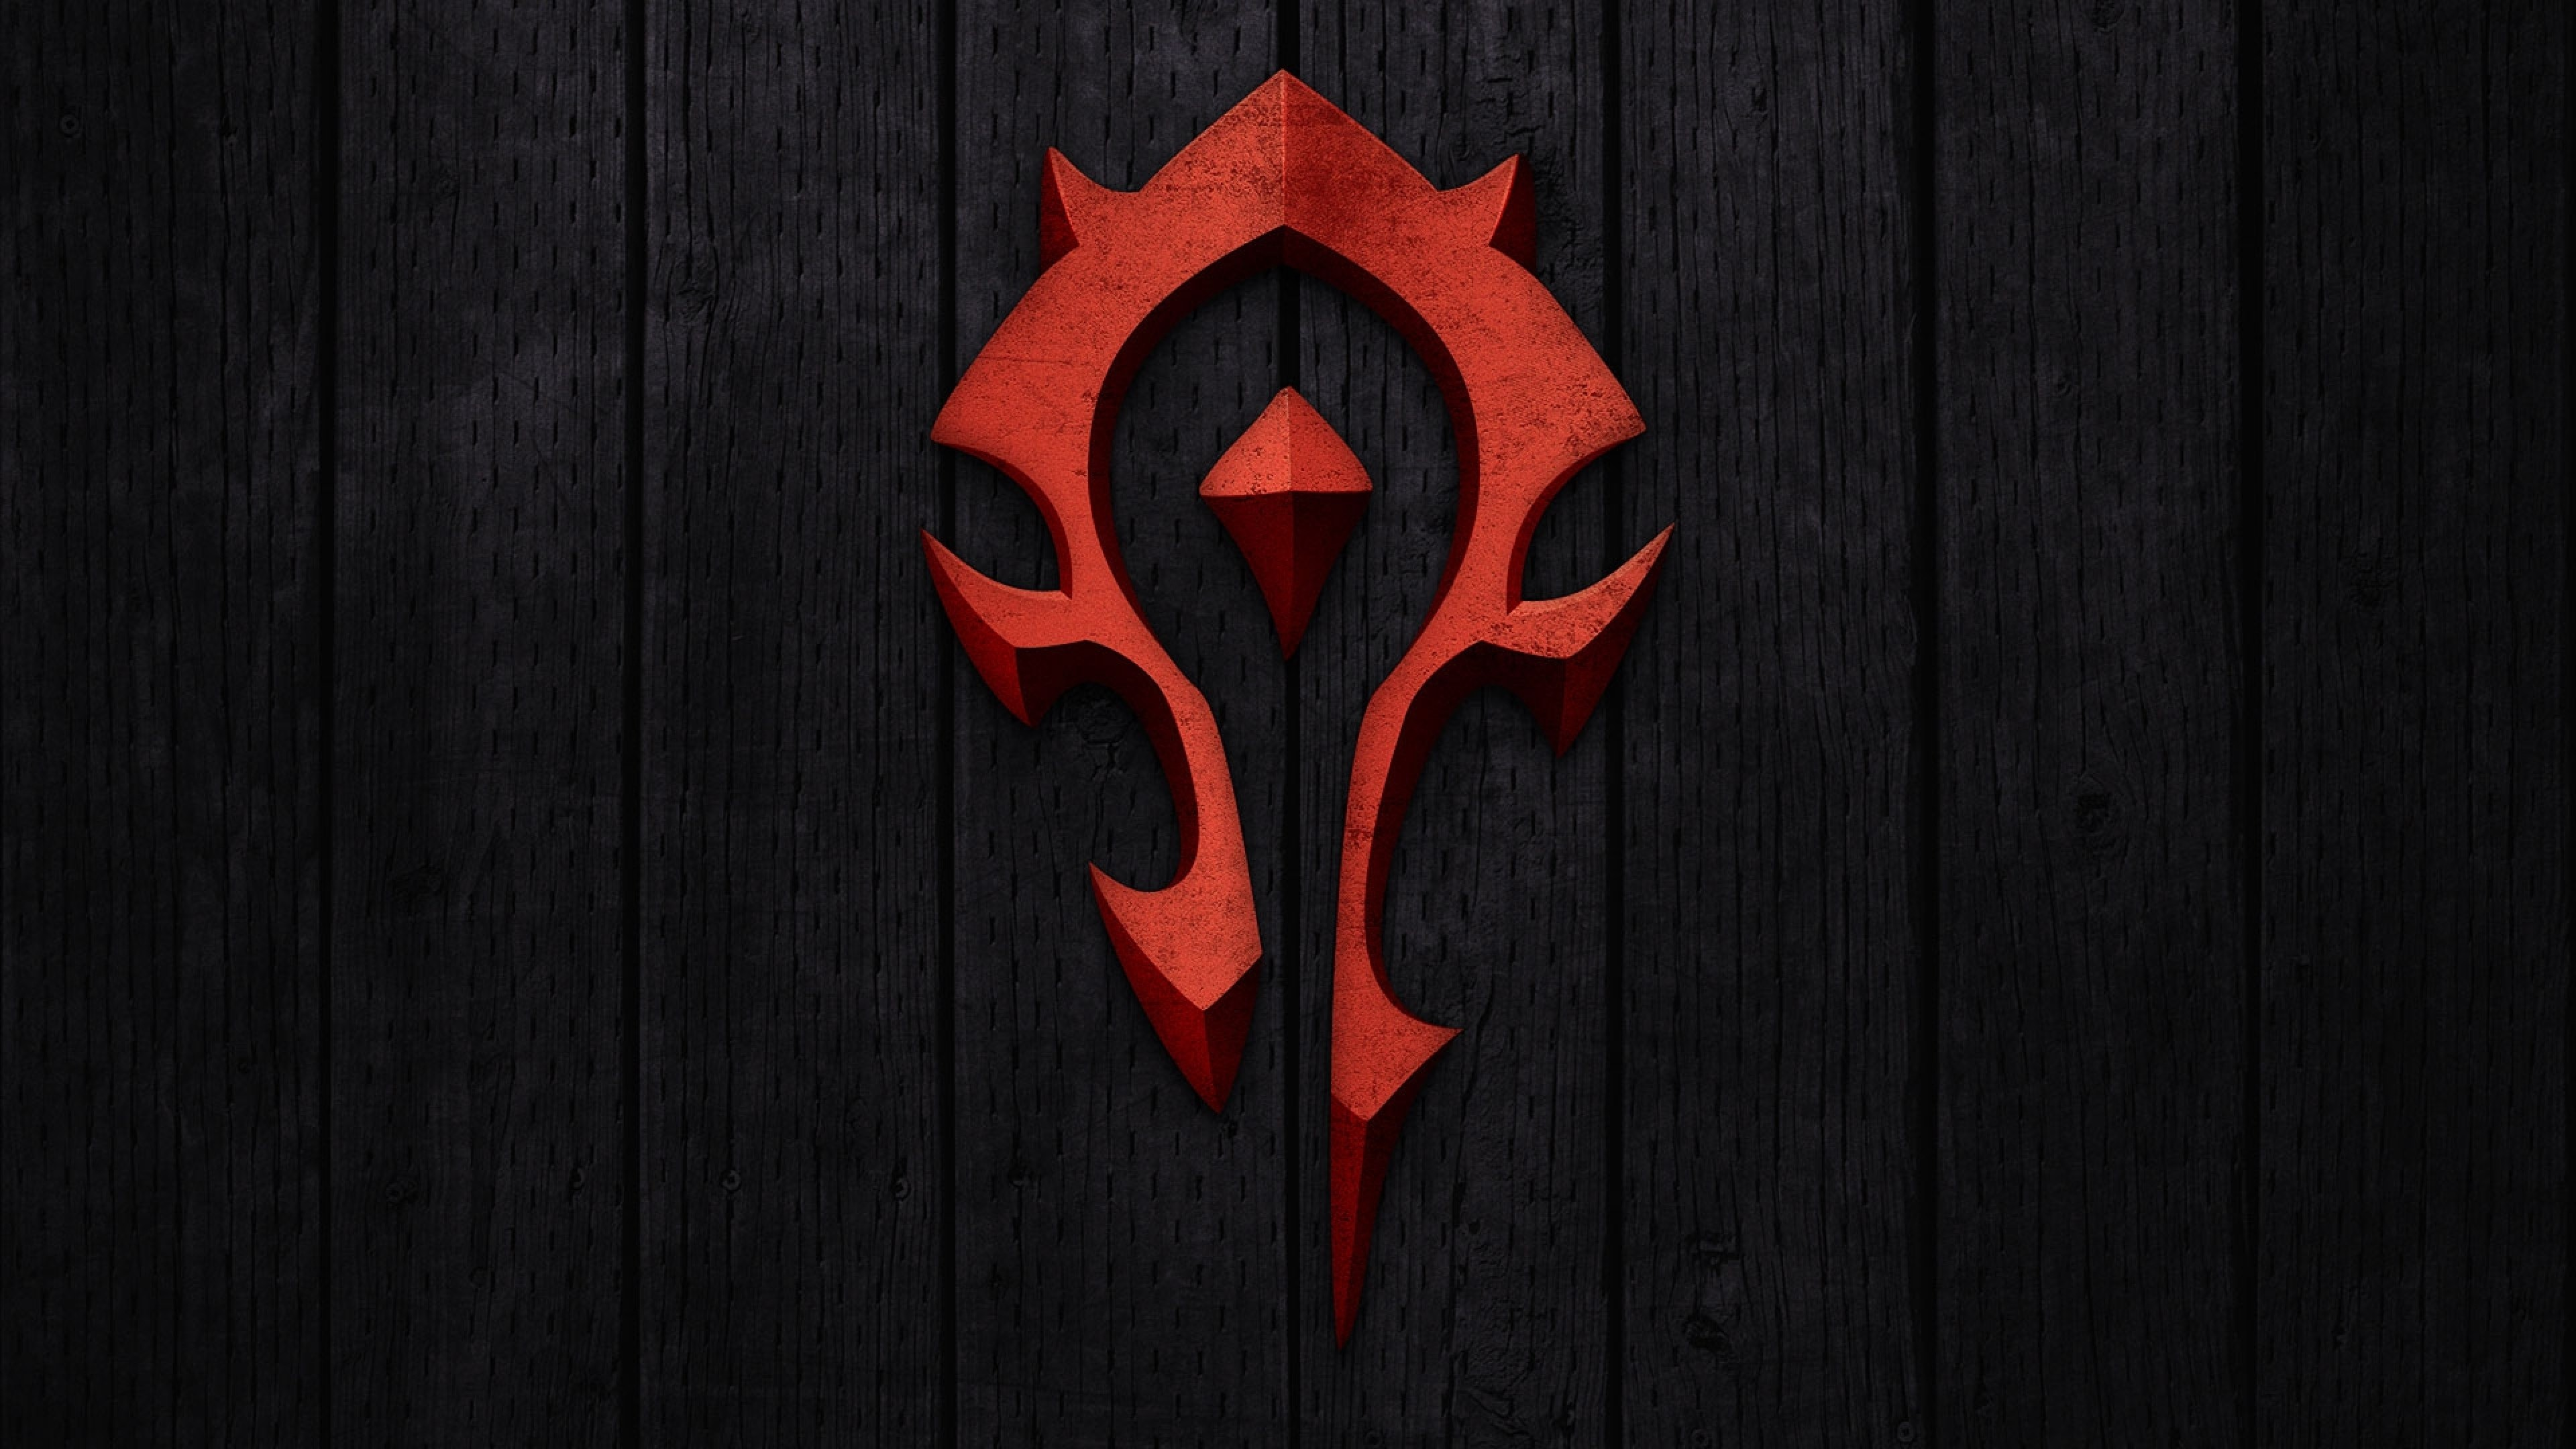 3840x2160 Preview wallpaper world of warcraft, horde, symbol, background, red